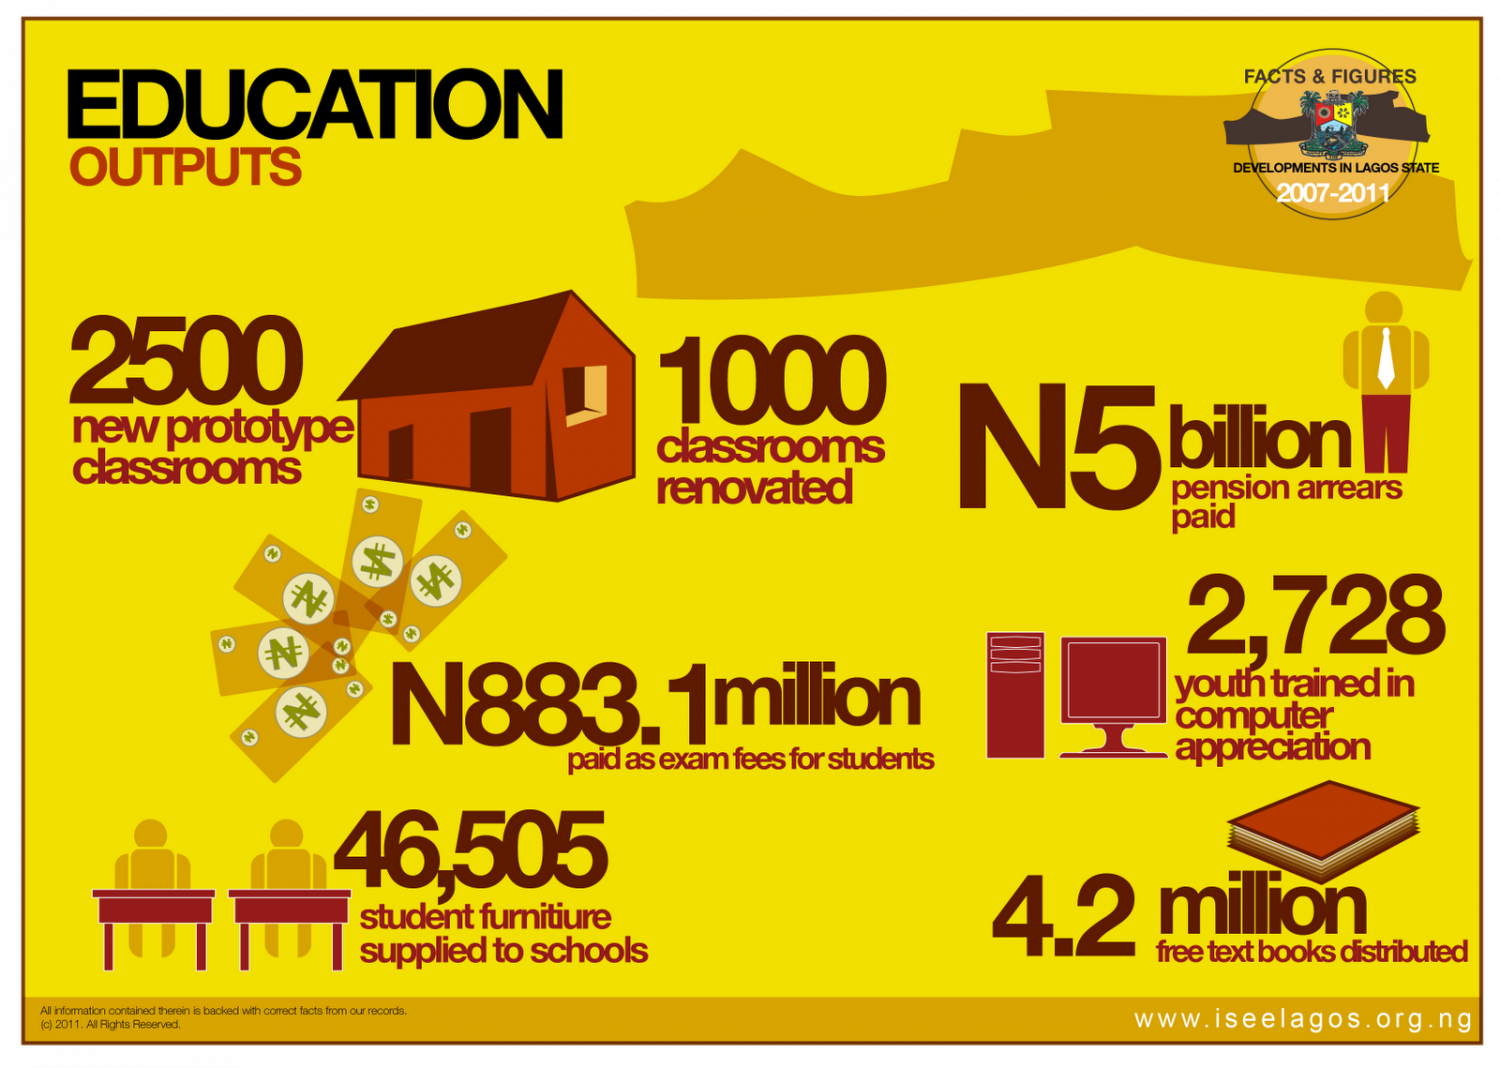 Education Outputs Lagos Infographic